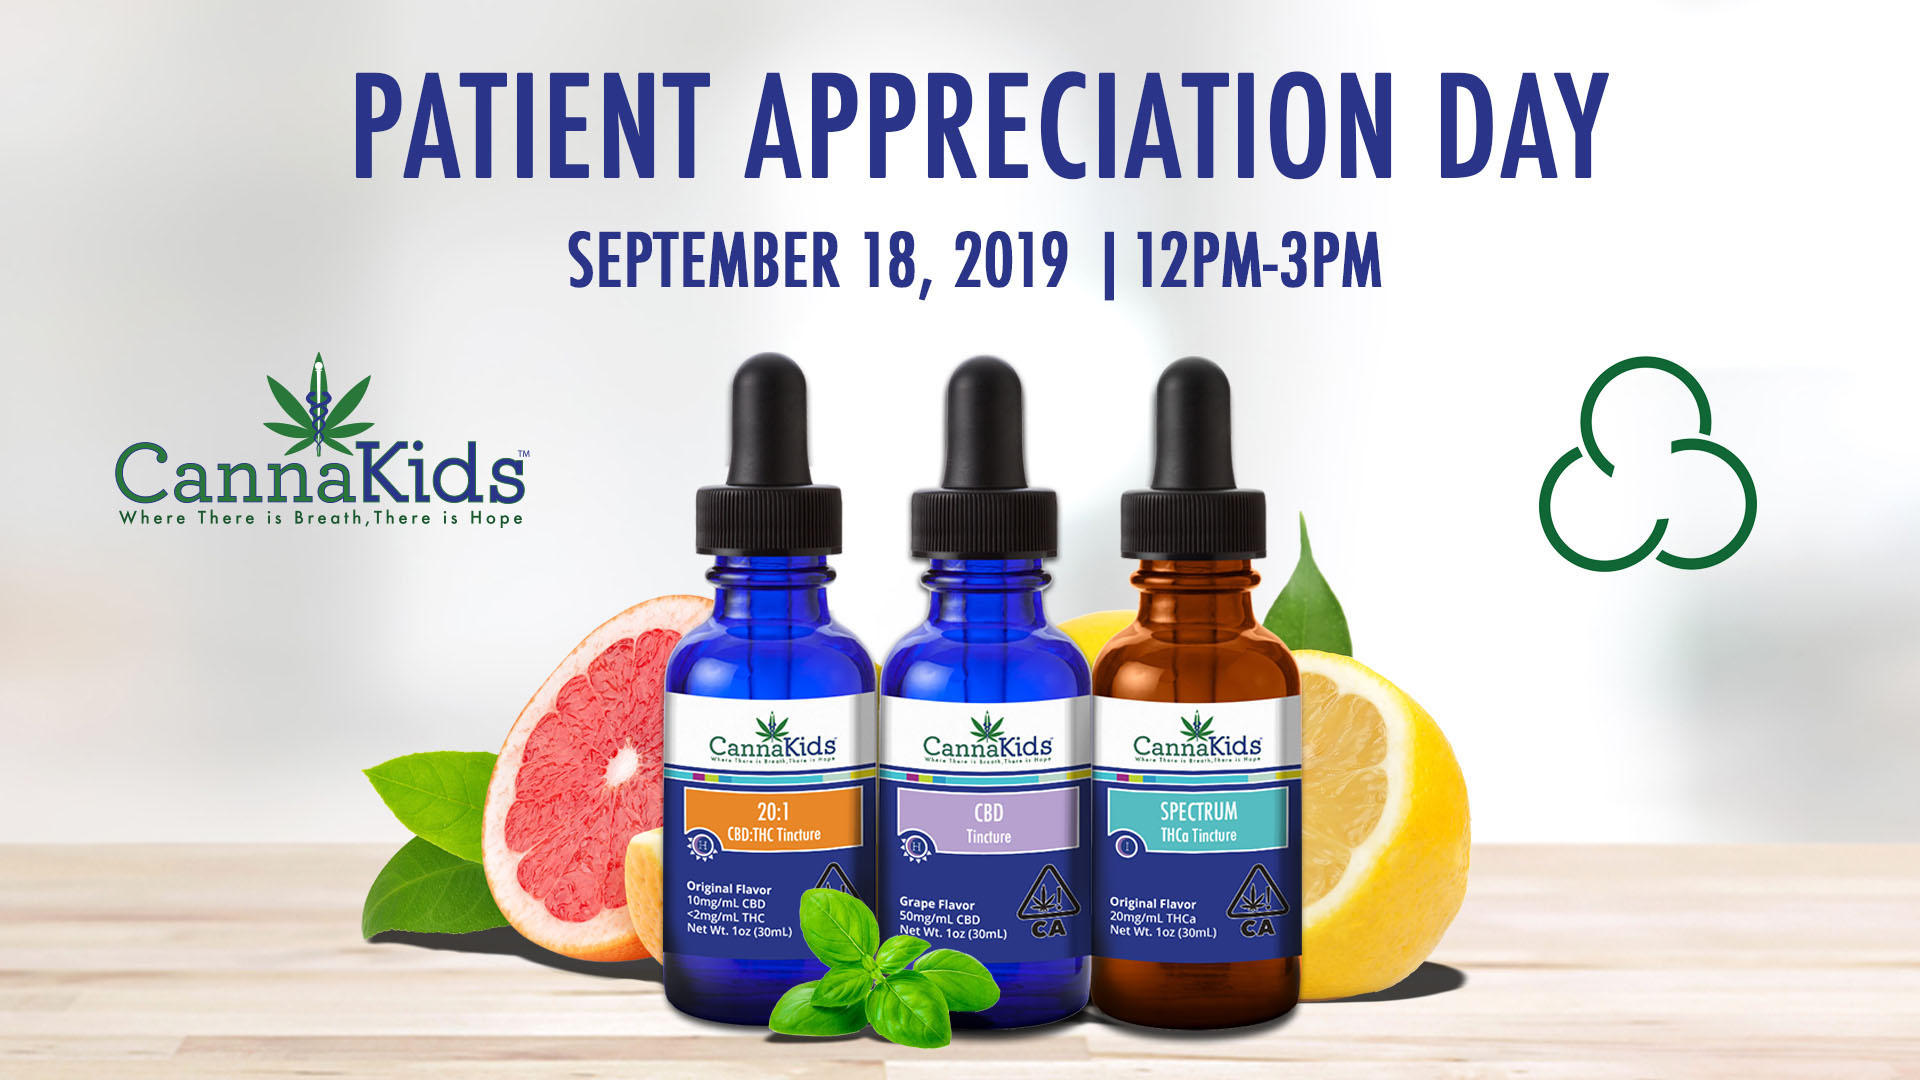 CannaKids Patient Appreciation Day at Coast to Coast Collective